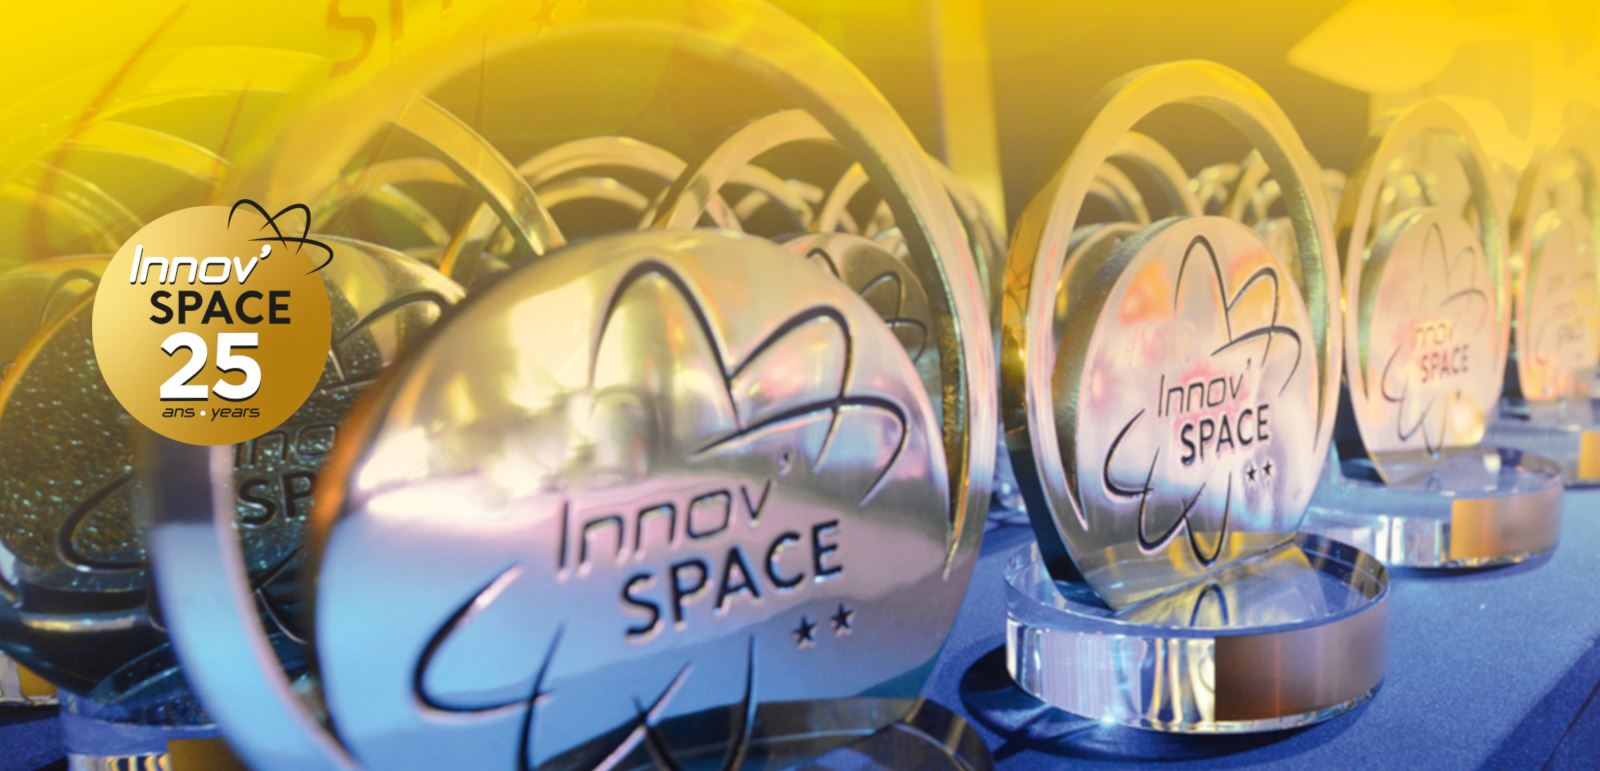 25 years of Innov'Space